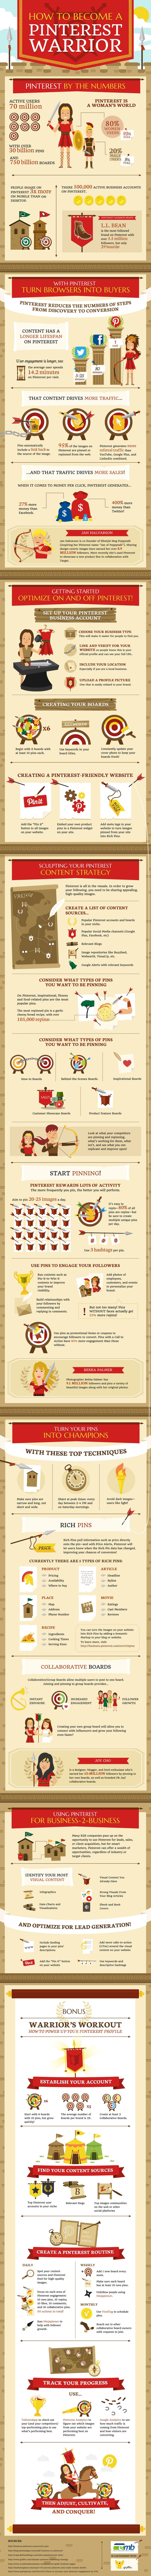 Become a Pinterest Warrior and Boost Your Brand [Infographic]j+ Media Solutions